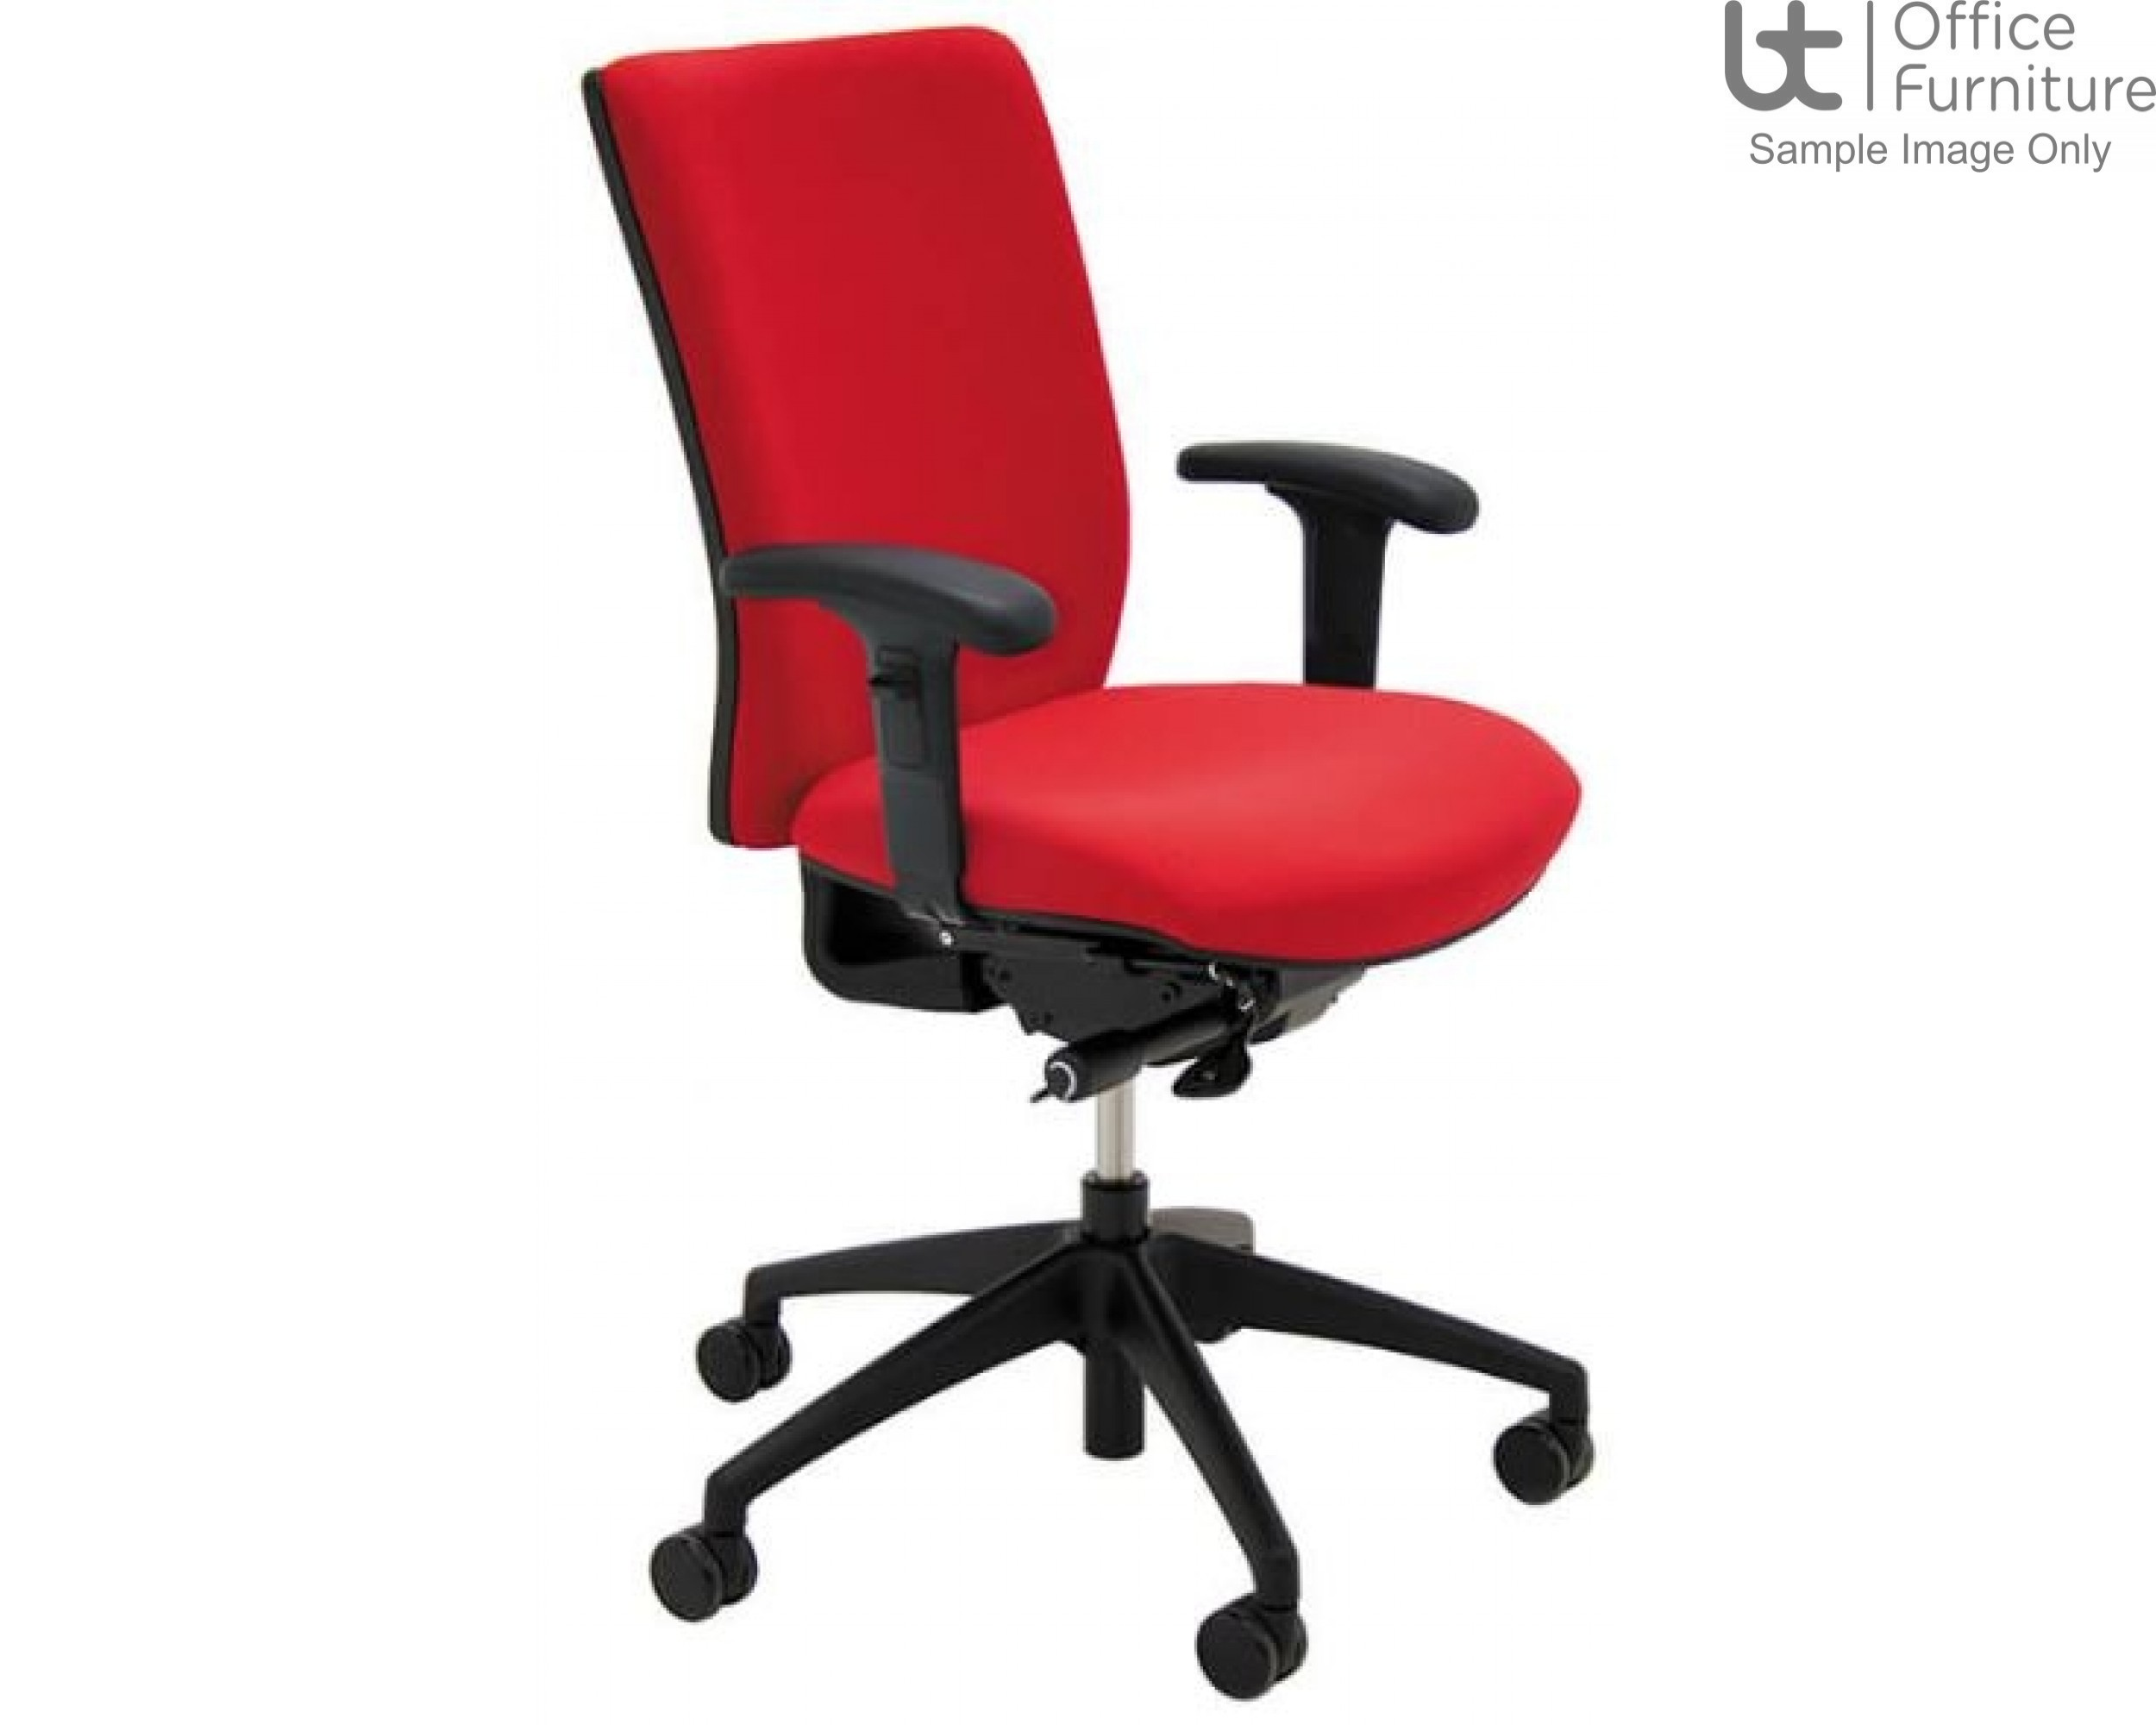 Verco Operator/Task Chair - Pop High Back Task Chair with Adjustable Arms